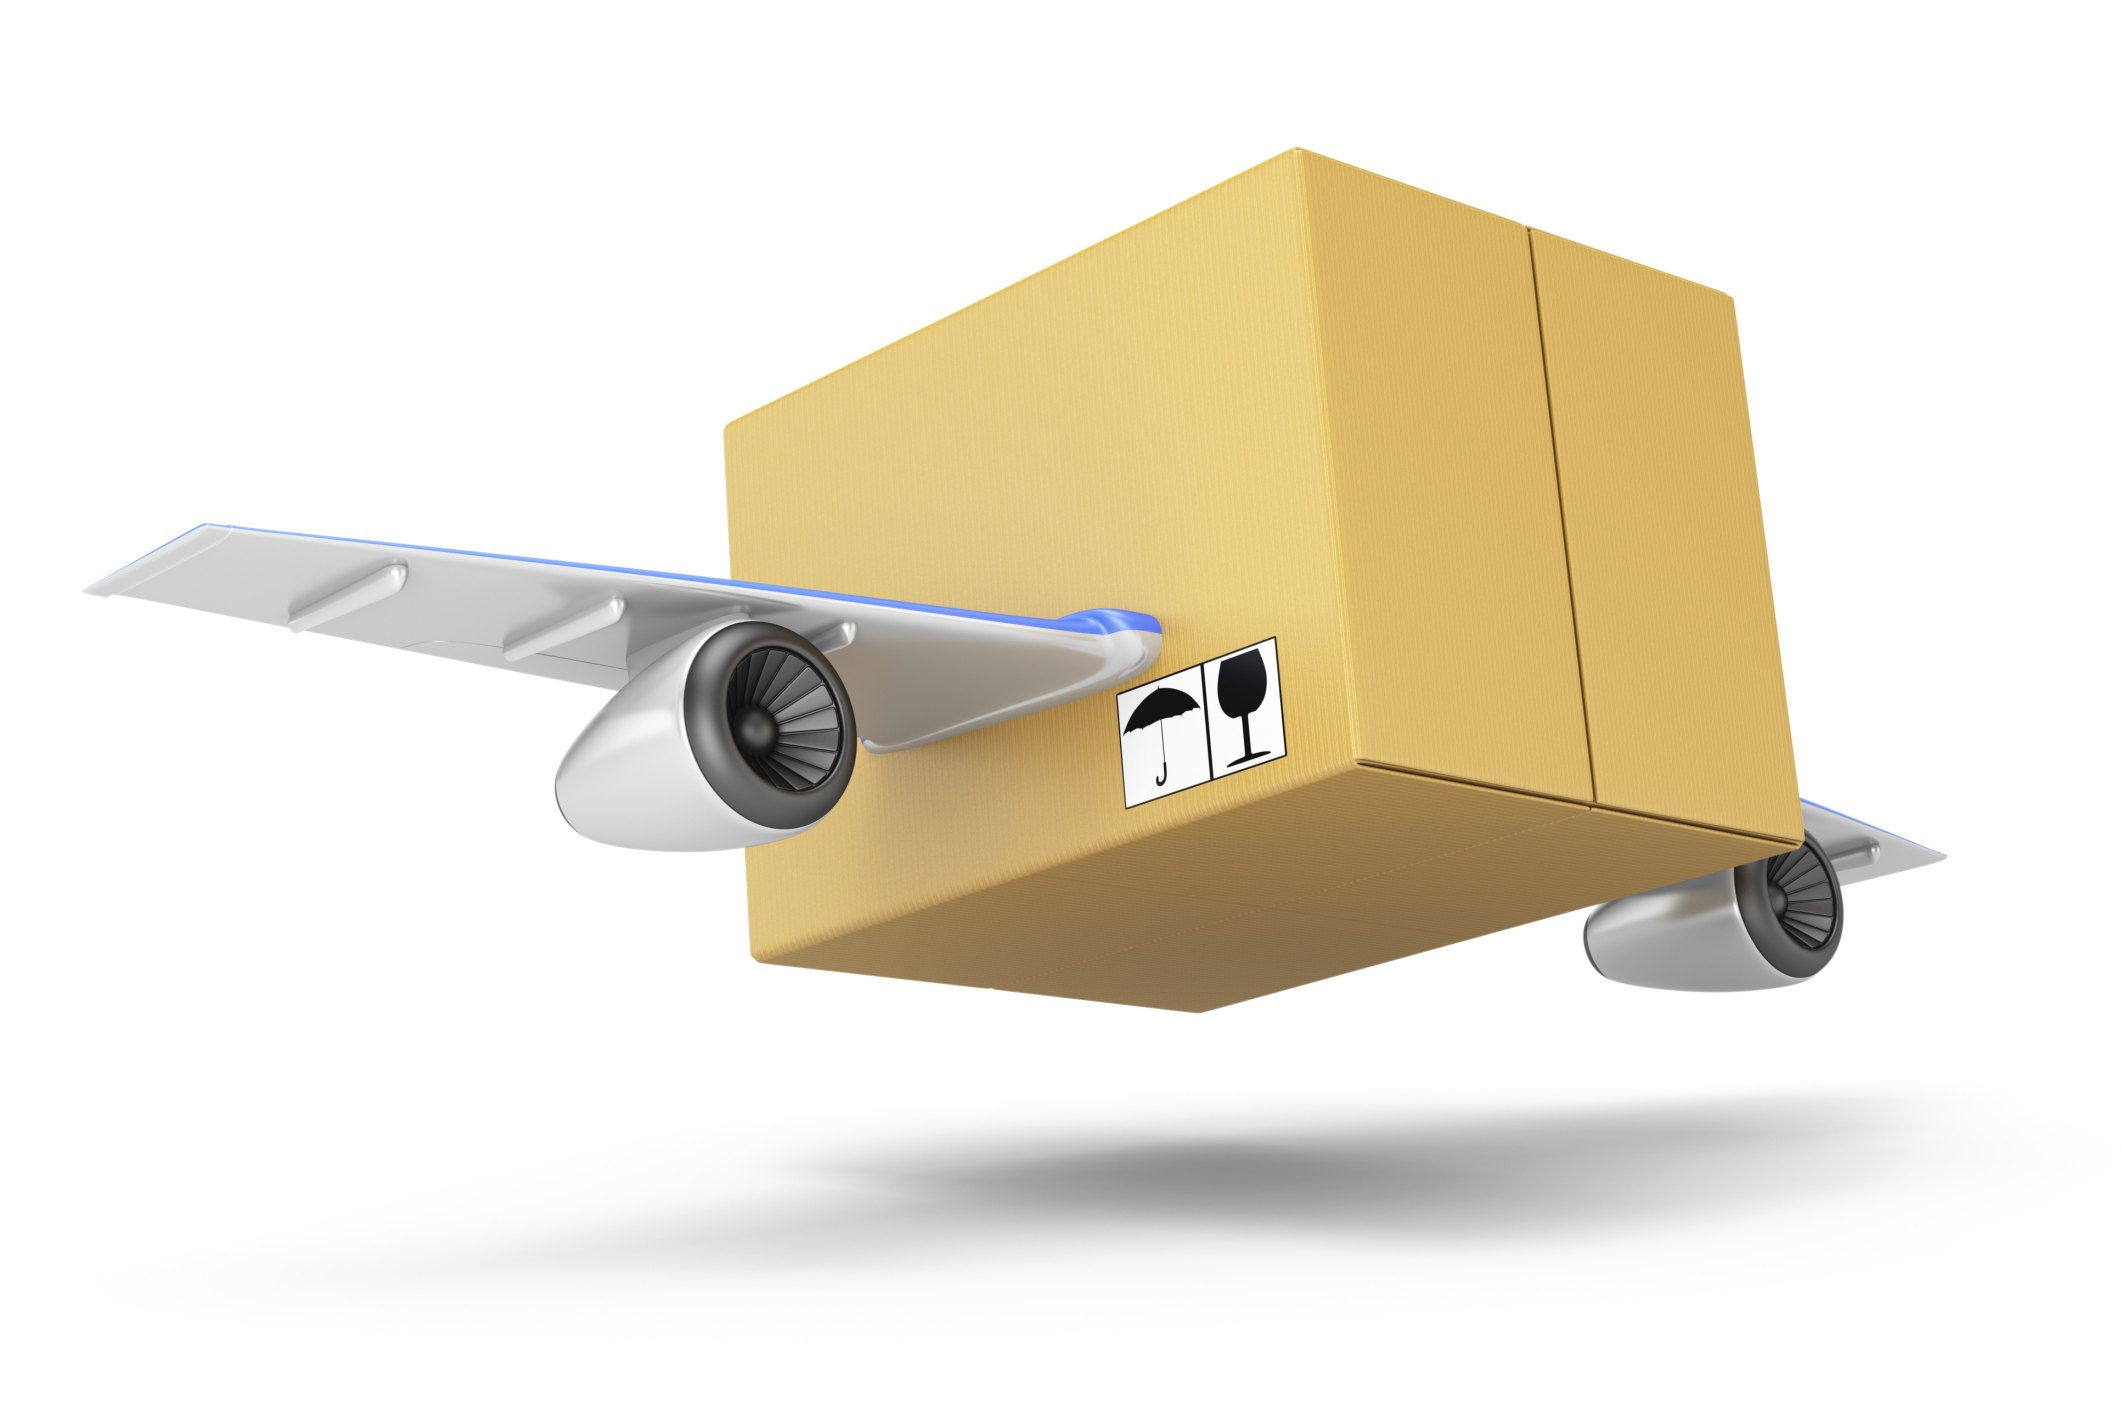 How to Make an Airplane From Cardboard | eHow